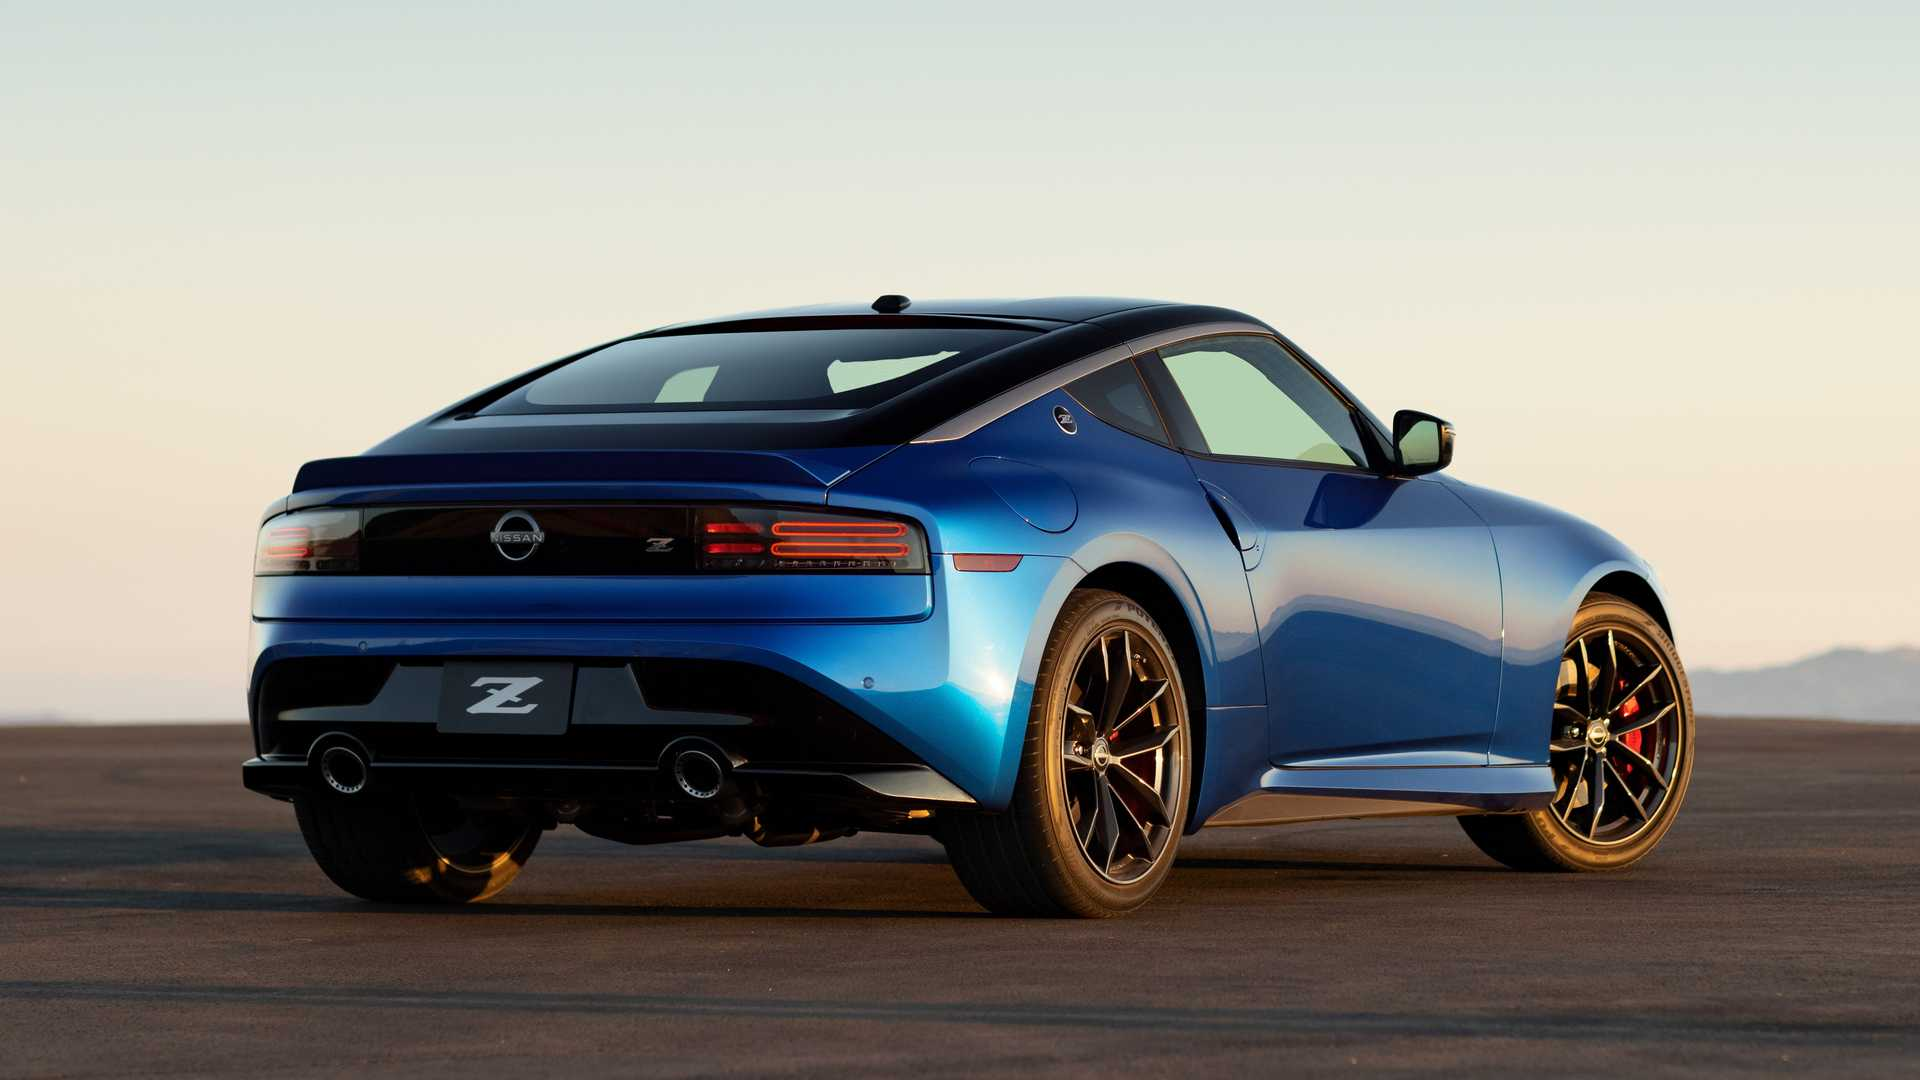 After more than ten years since the coming of the original Nissan 370Z, a replacement arrives at last. Meet the Nissan Z, a long-anticipated sports car that debuted in New York today with looks nearly identical to the last year's Z Proto Concept and dual turbos.